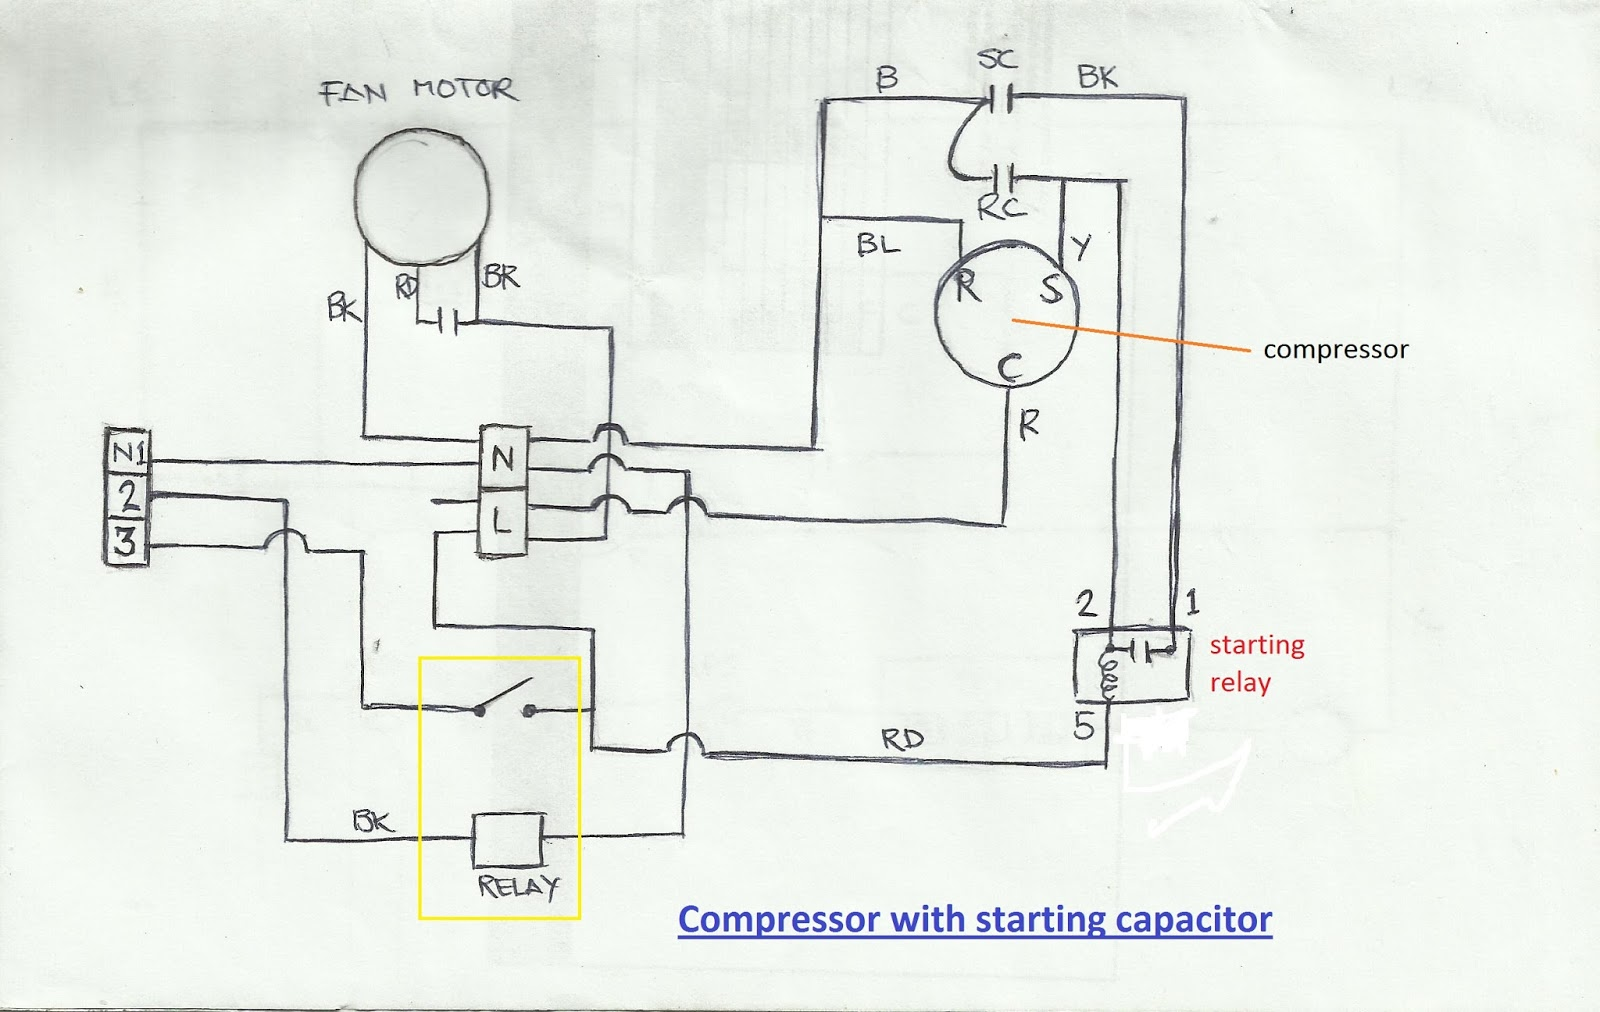 refrigeration and air conditioning repair: july 2013 hvac compressor wiring 3 phase hvac compressor wiring